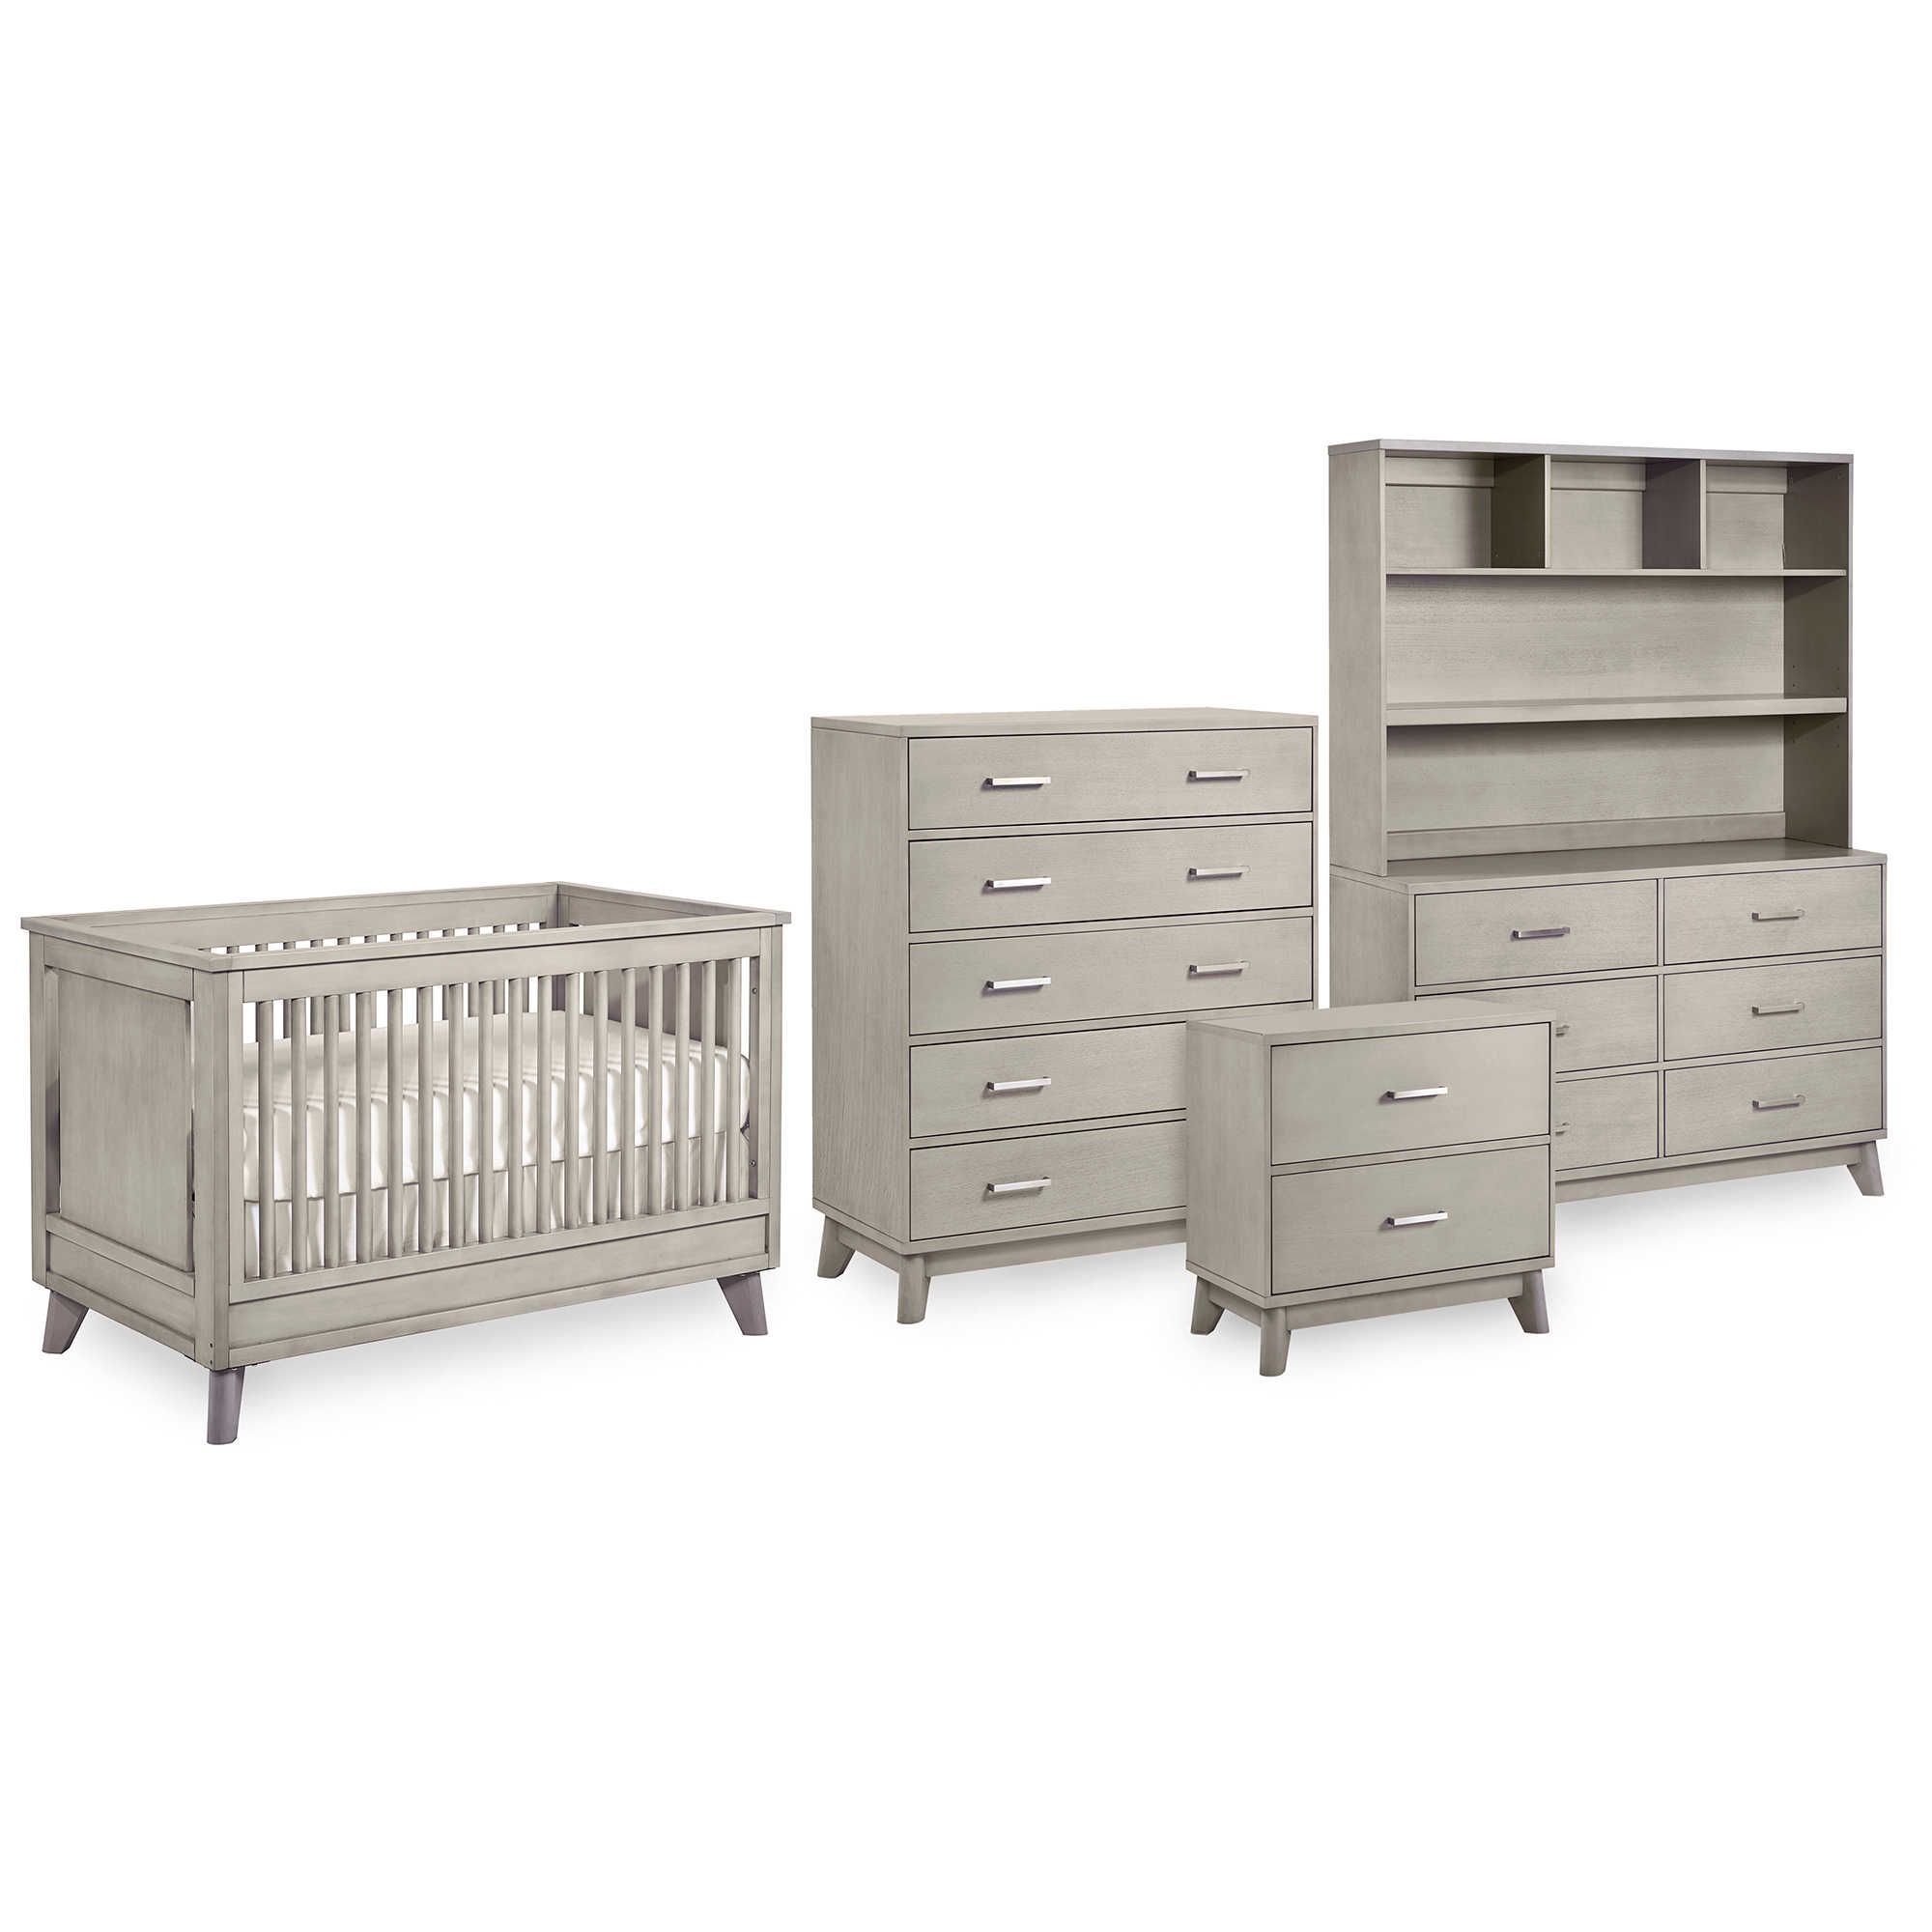 Munireu0026 Wyndham Collection Redefines The Contemporary Nursery By Adding A  Hint Of Vintage Inspired Elegance. These Sleek Pieces Feature A Platform  Style ...